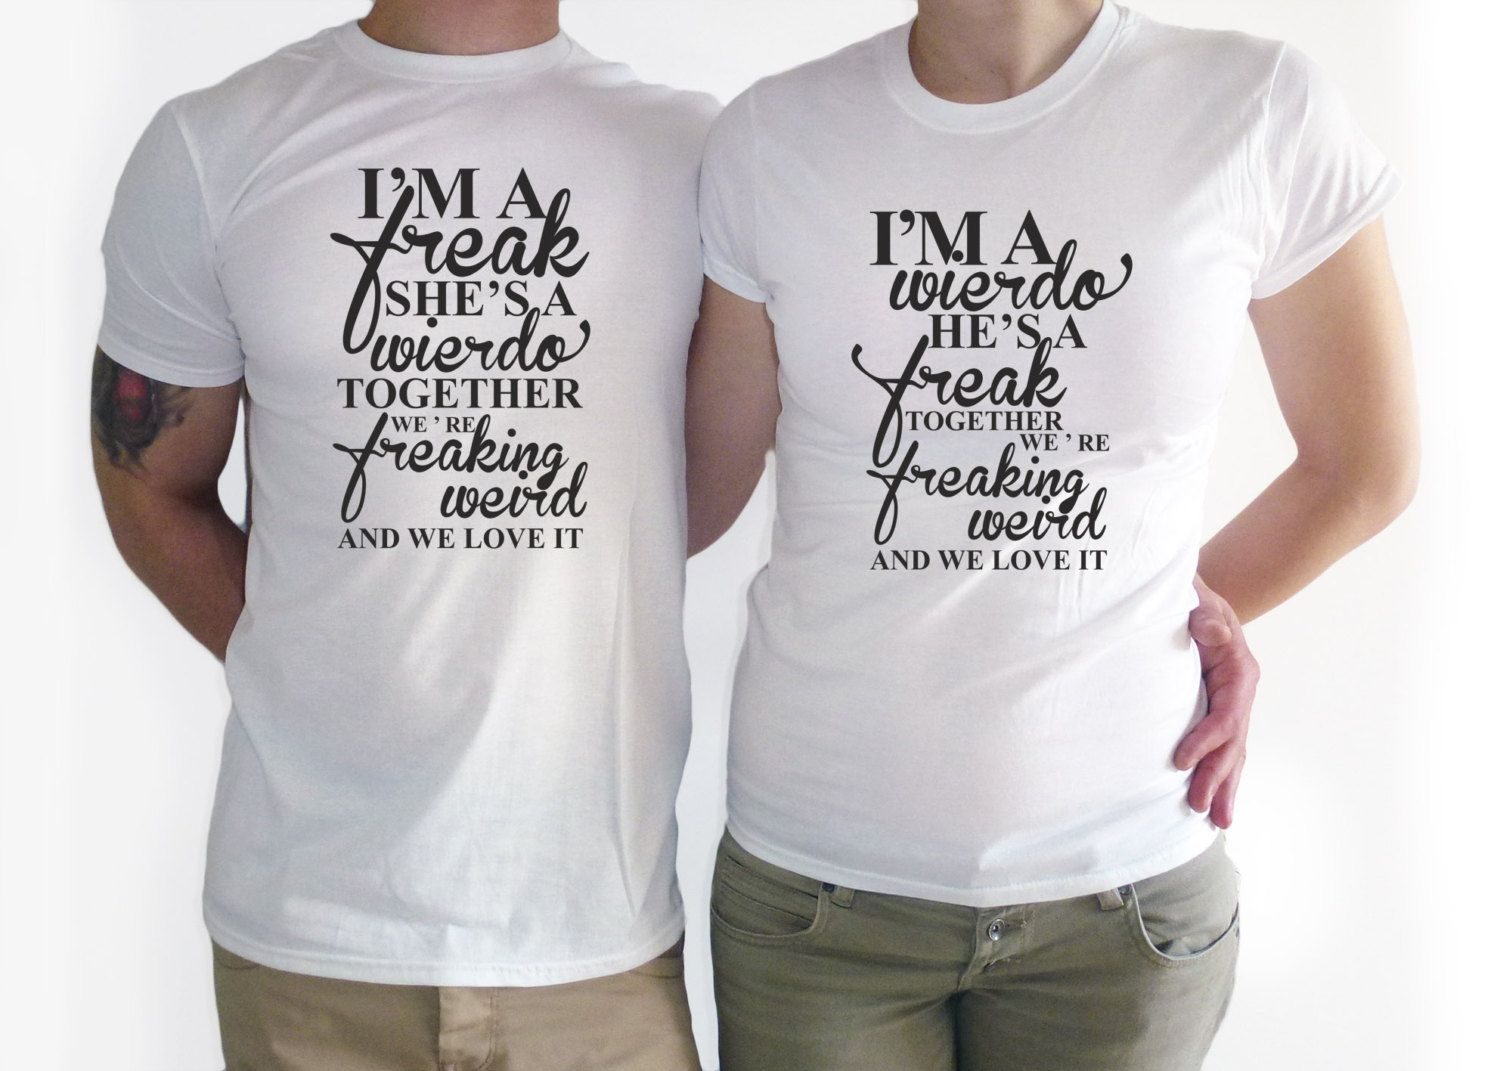 99af66eb0c1 COUPLES T SHIRT. Im a weirdo shirt. Funny couple t shirt. BFF shirt gift. Best  friend gift We go together Wedding gift matching shirt gift by Crafteri on  ...